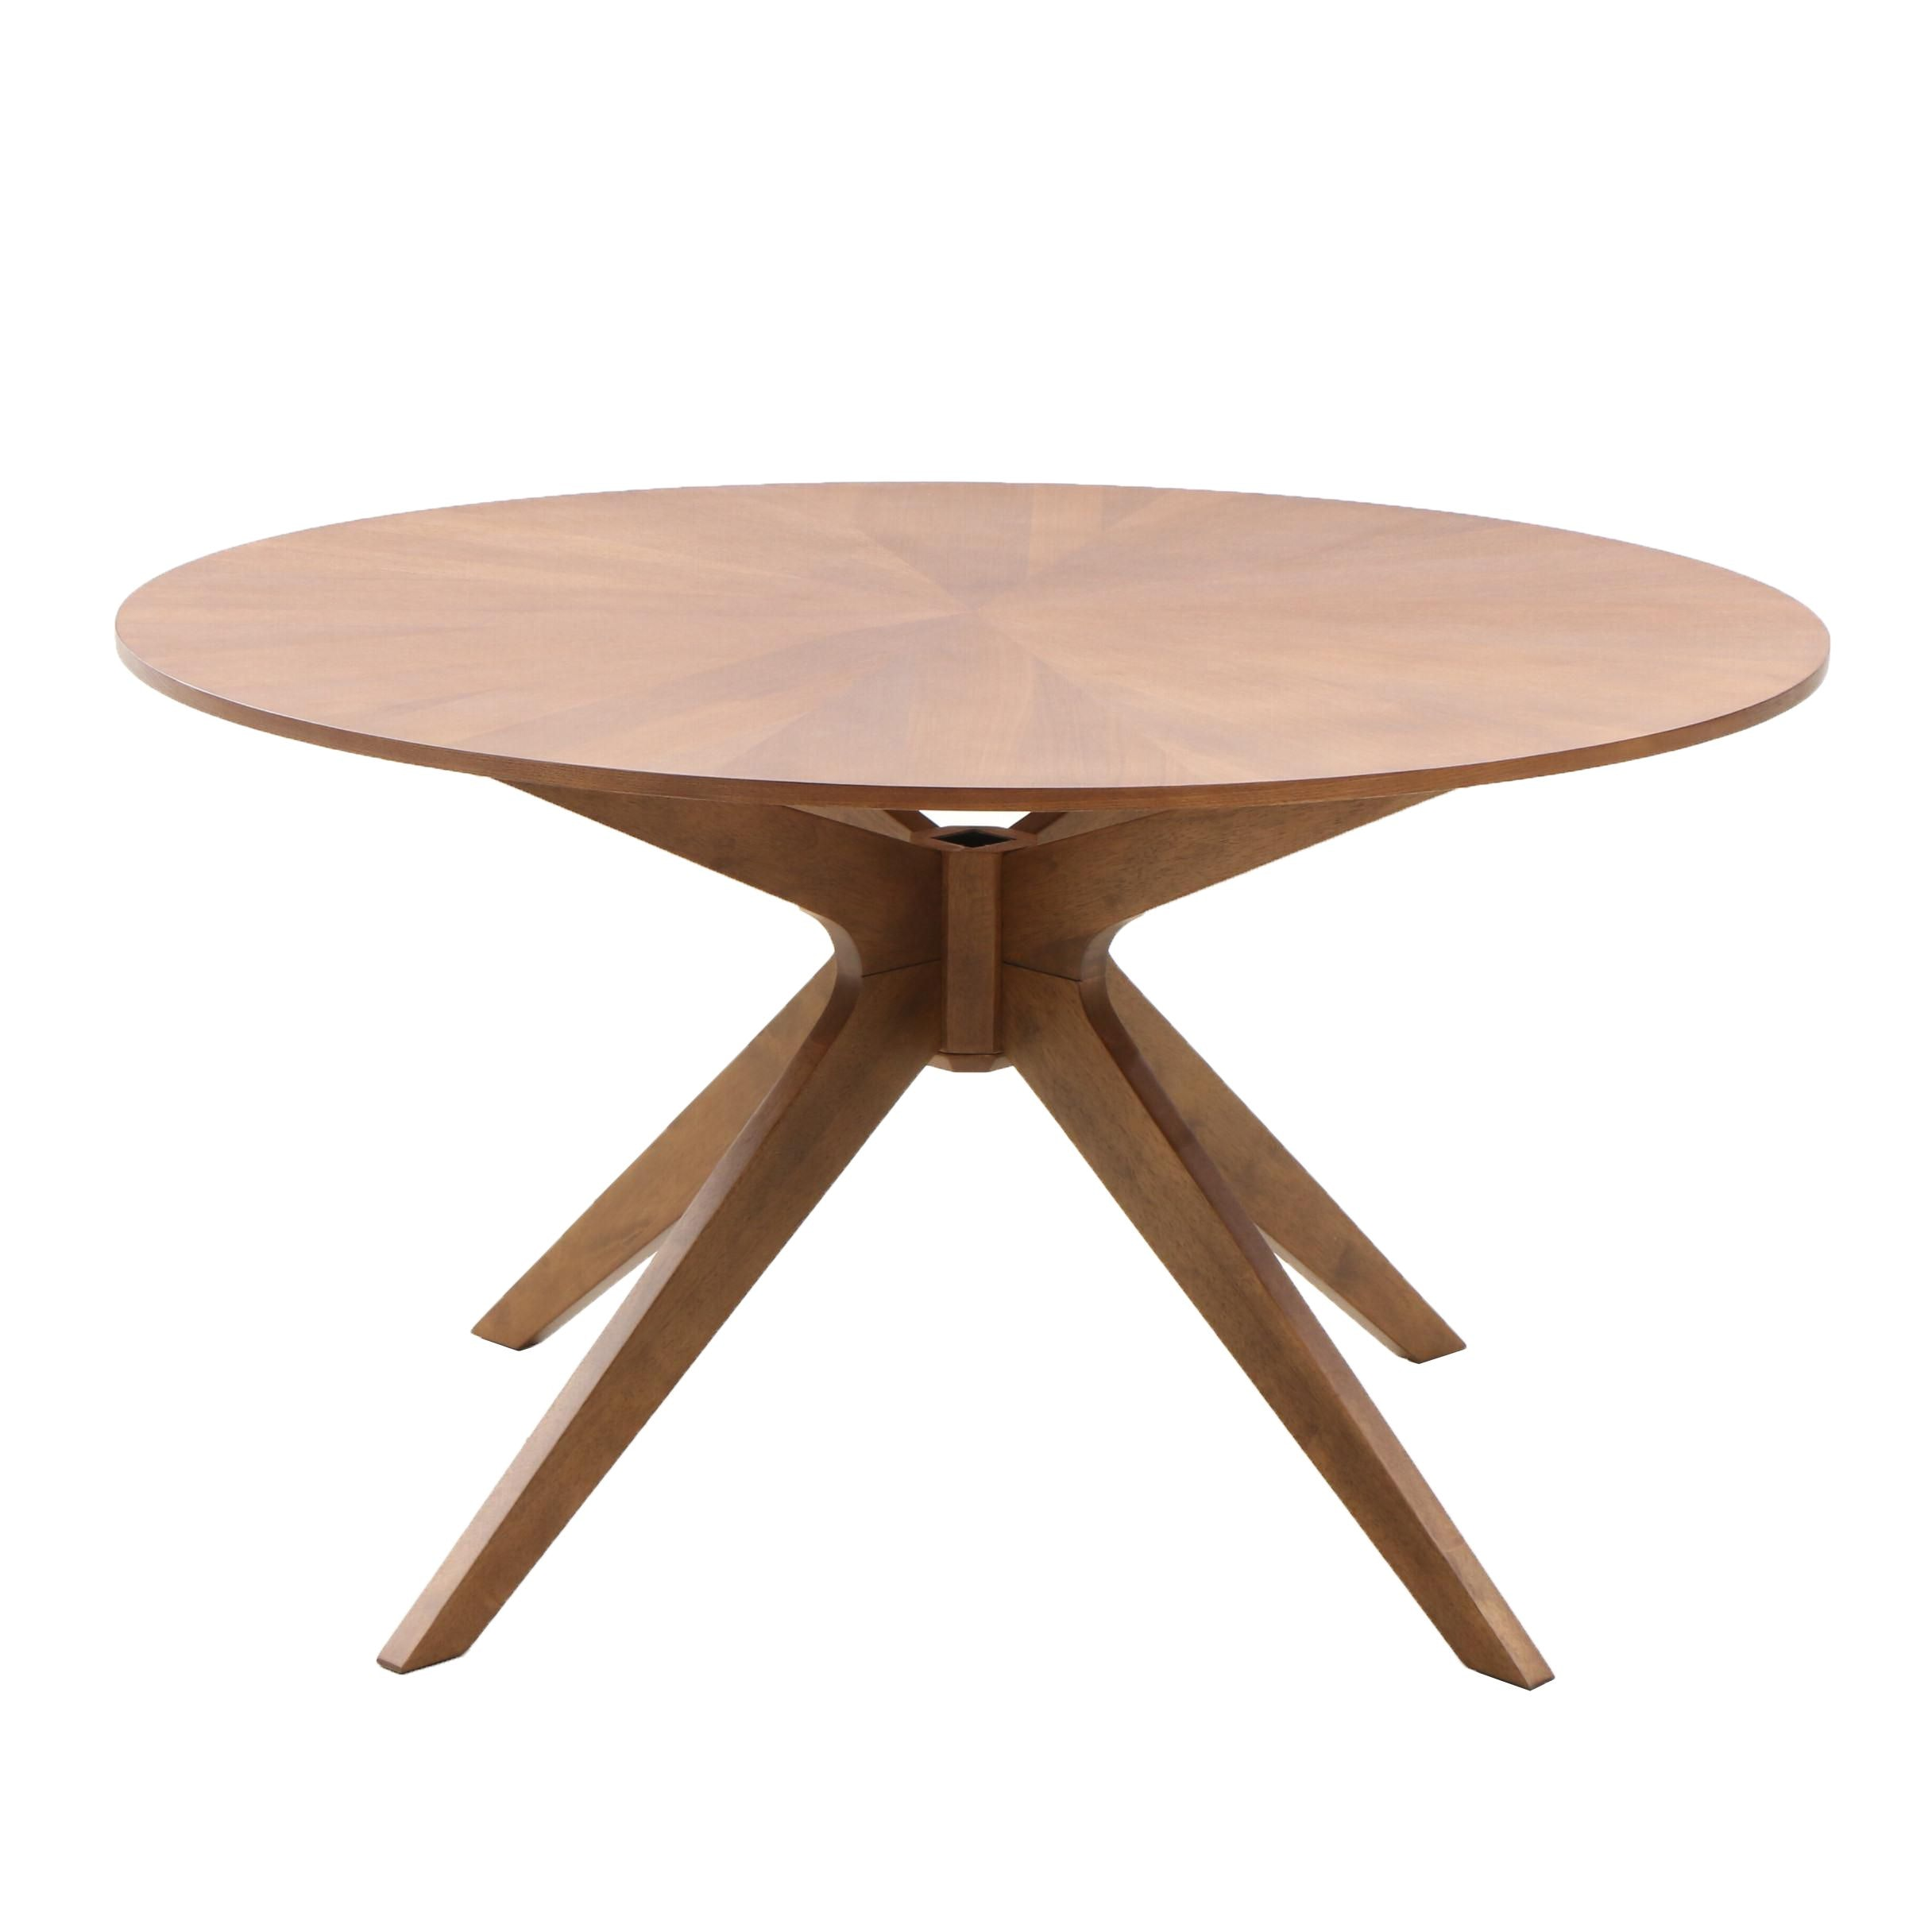 Bookmatched Oak Veneer Dining Table by Article Furniture